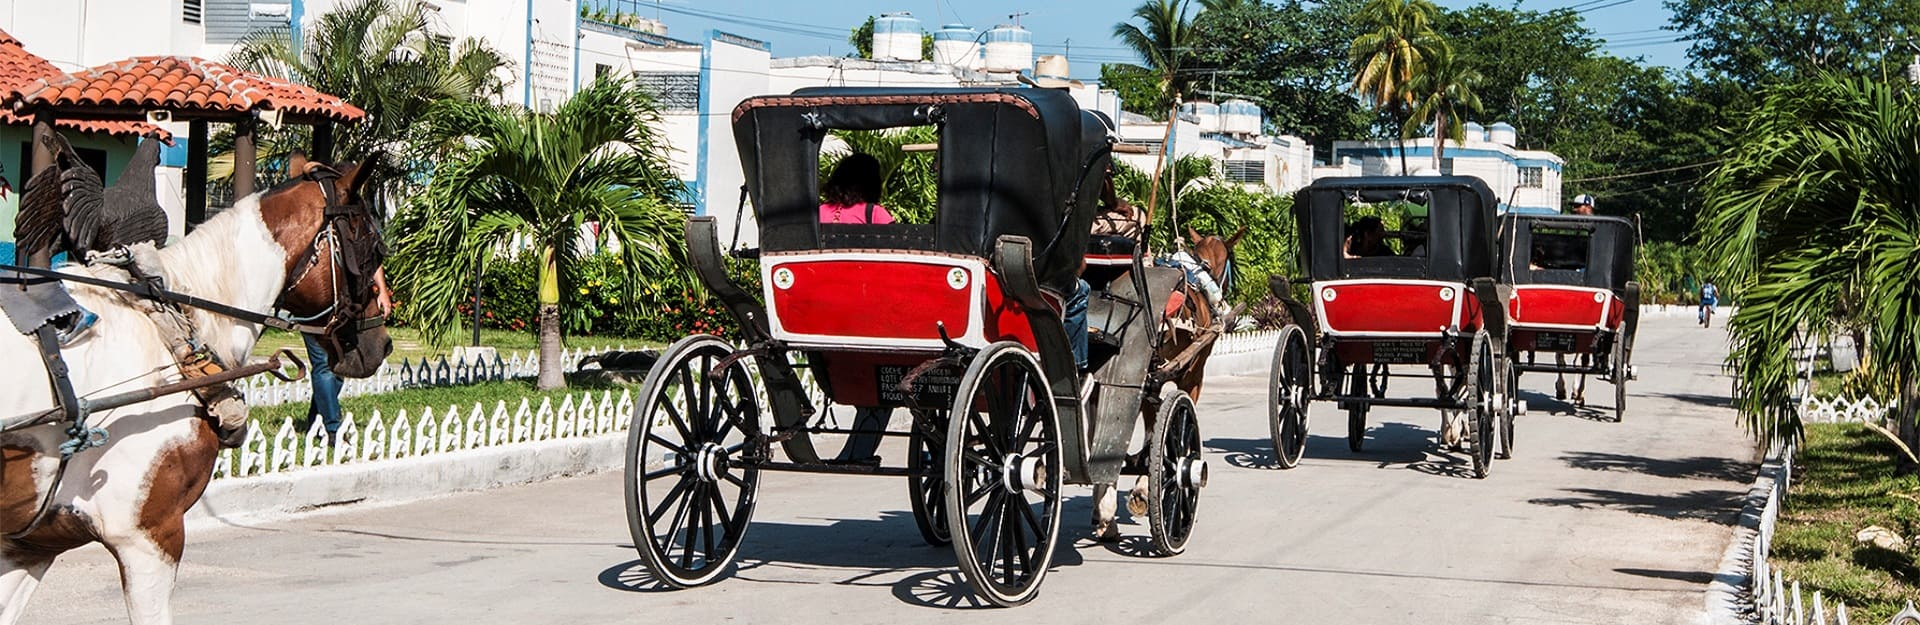 Traditional carriages in Bayamo, GranmaTravel